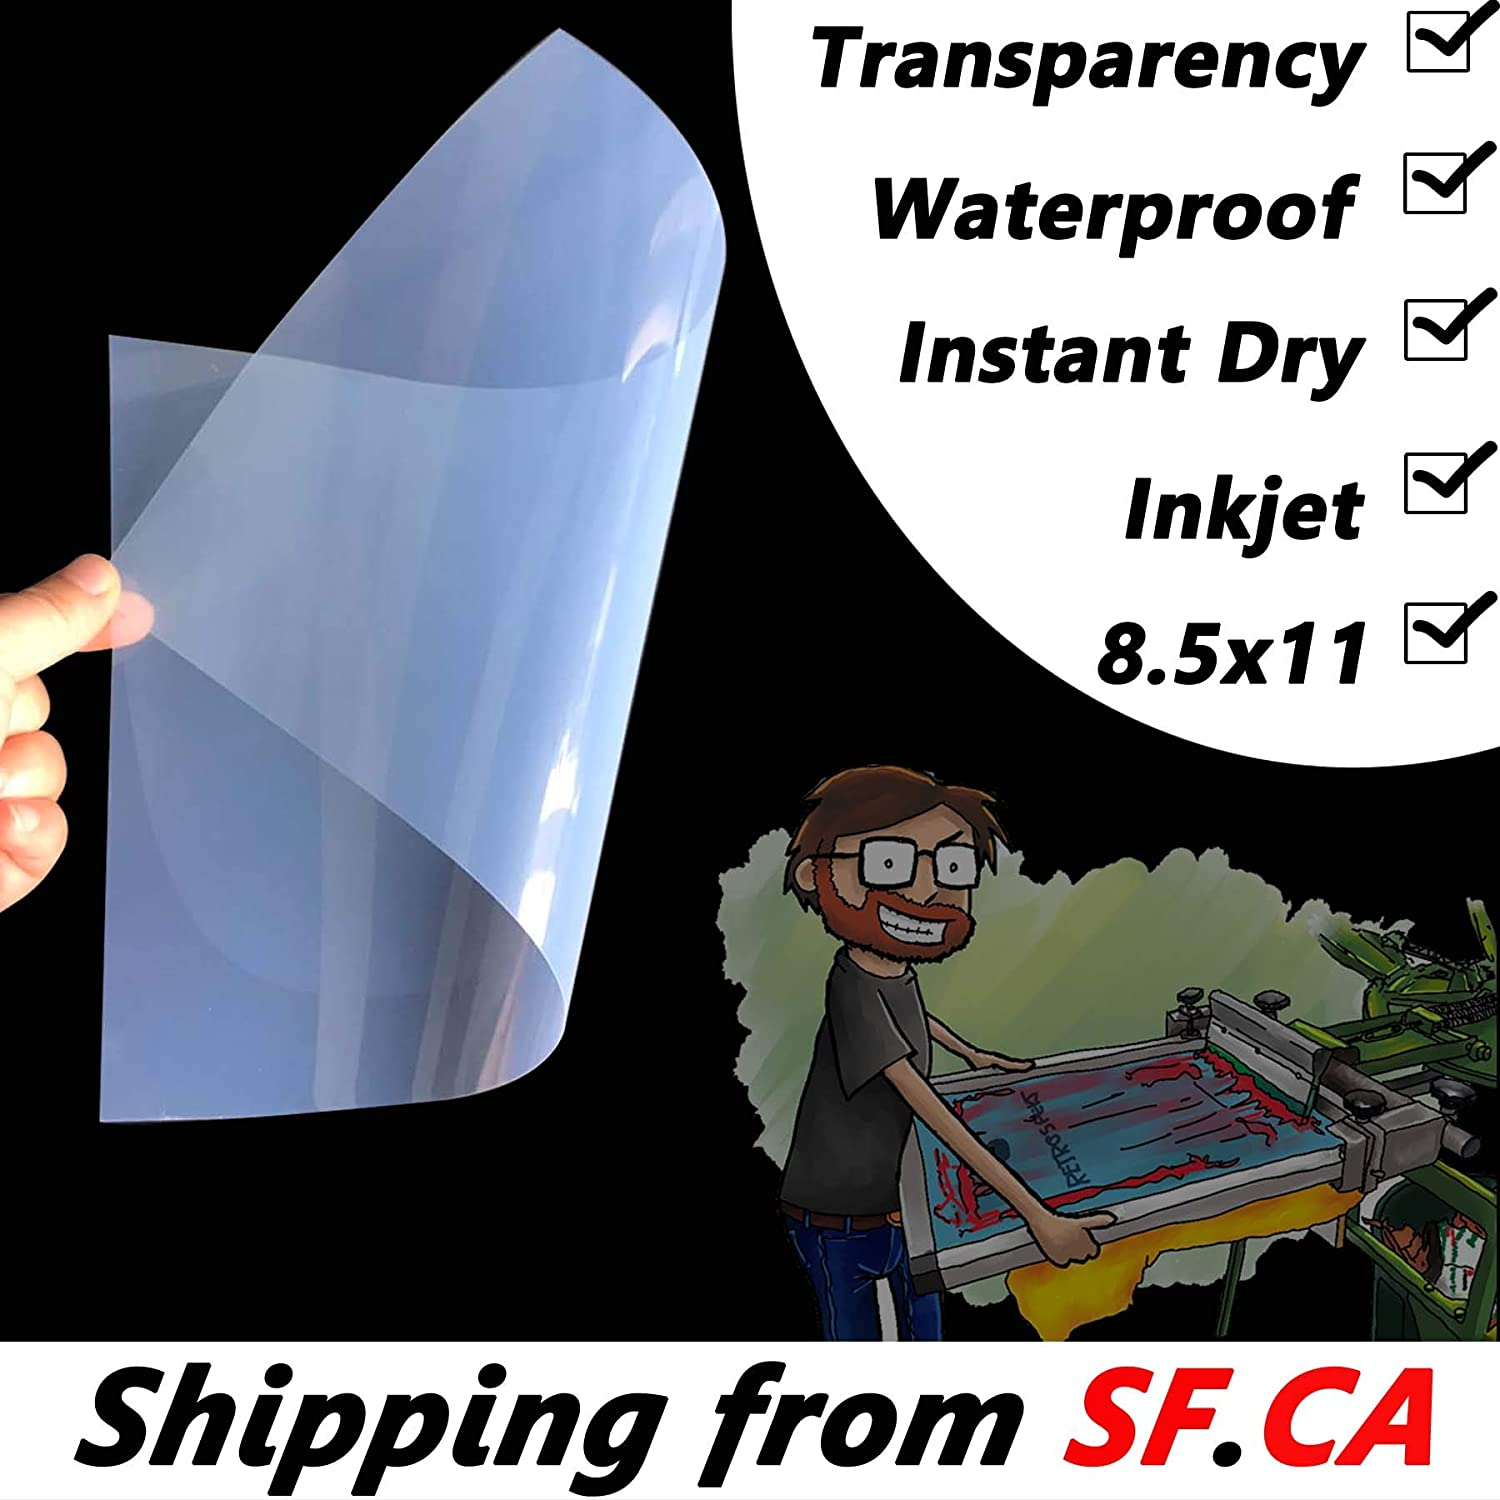 EPSON,HP,CANON PRINTERS 13x19,100 sheets,Waterproof Inkjet Instant-Dry Silk Screen Printing Milky Transparency Film 5mil,It is ideal for water-based dye and pigment inkjet printing printers